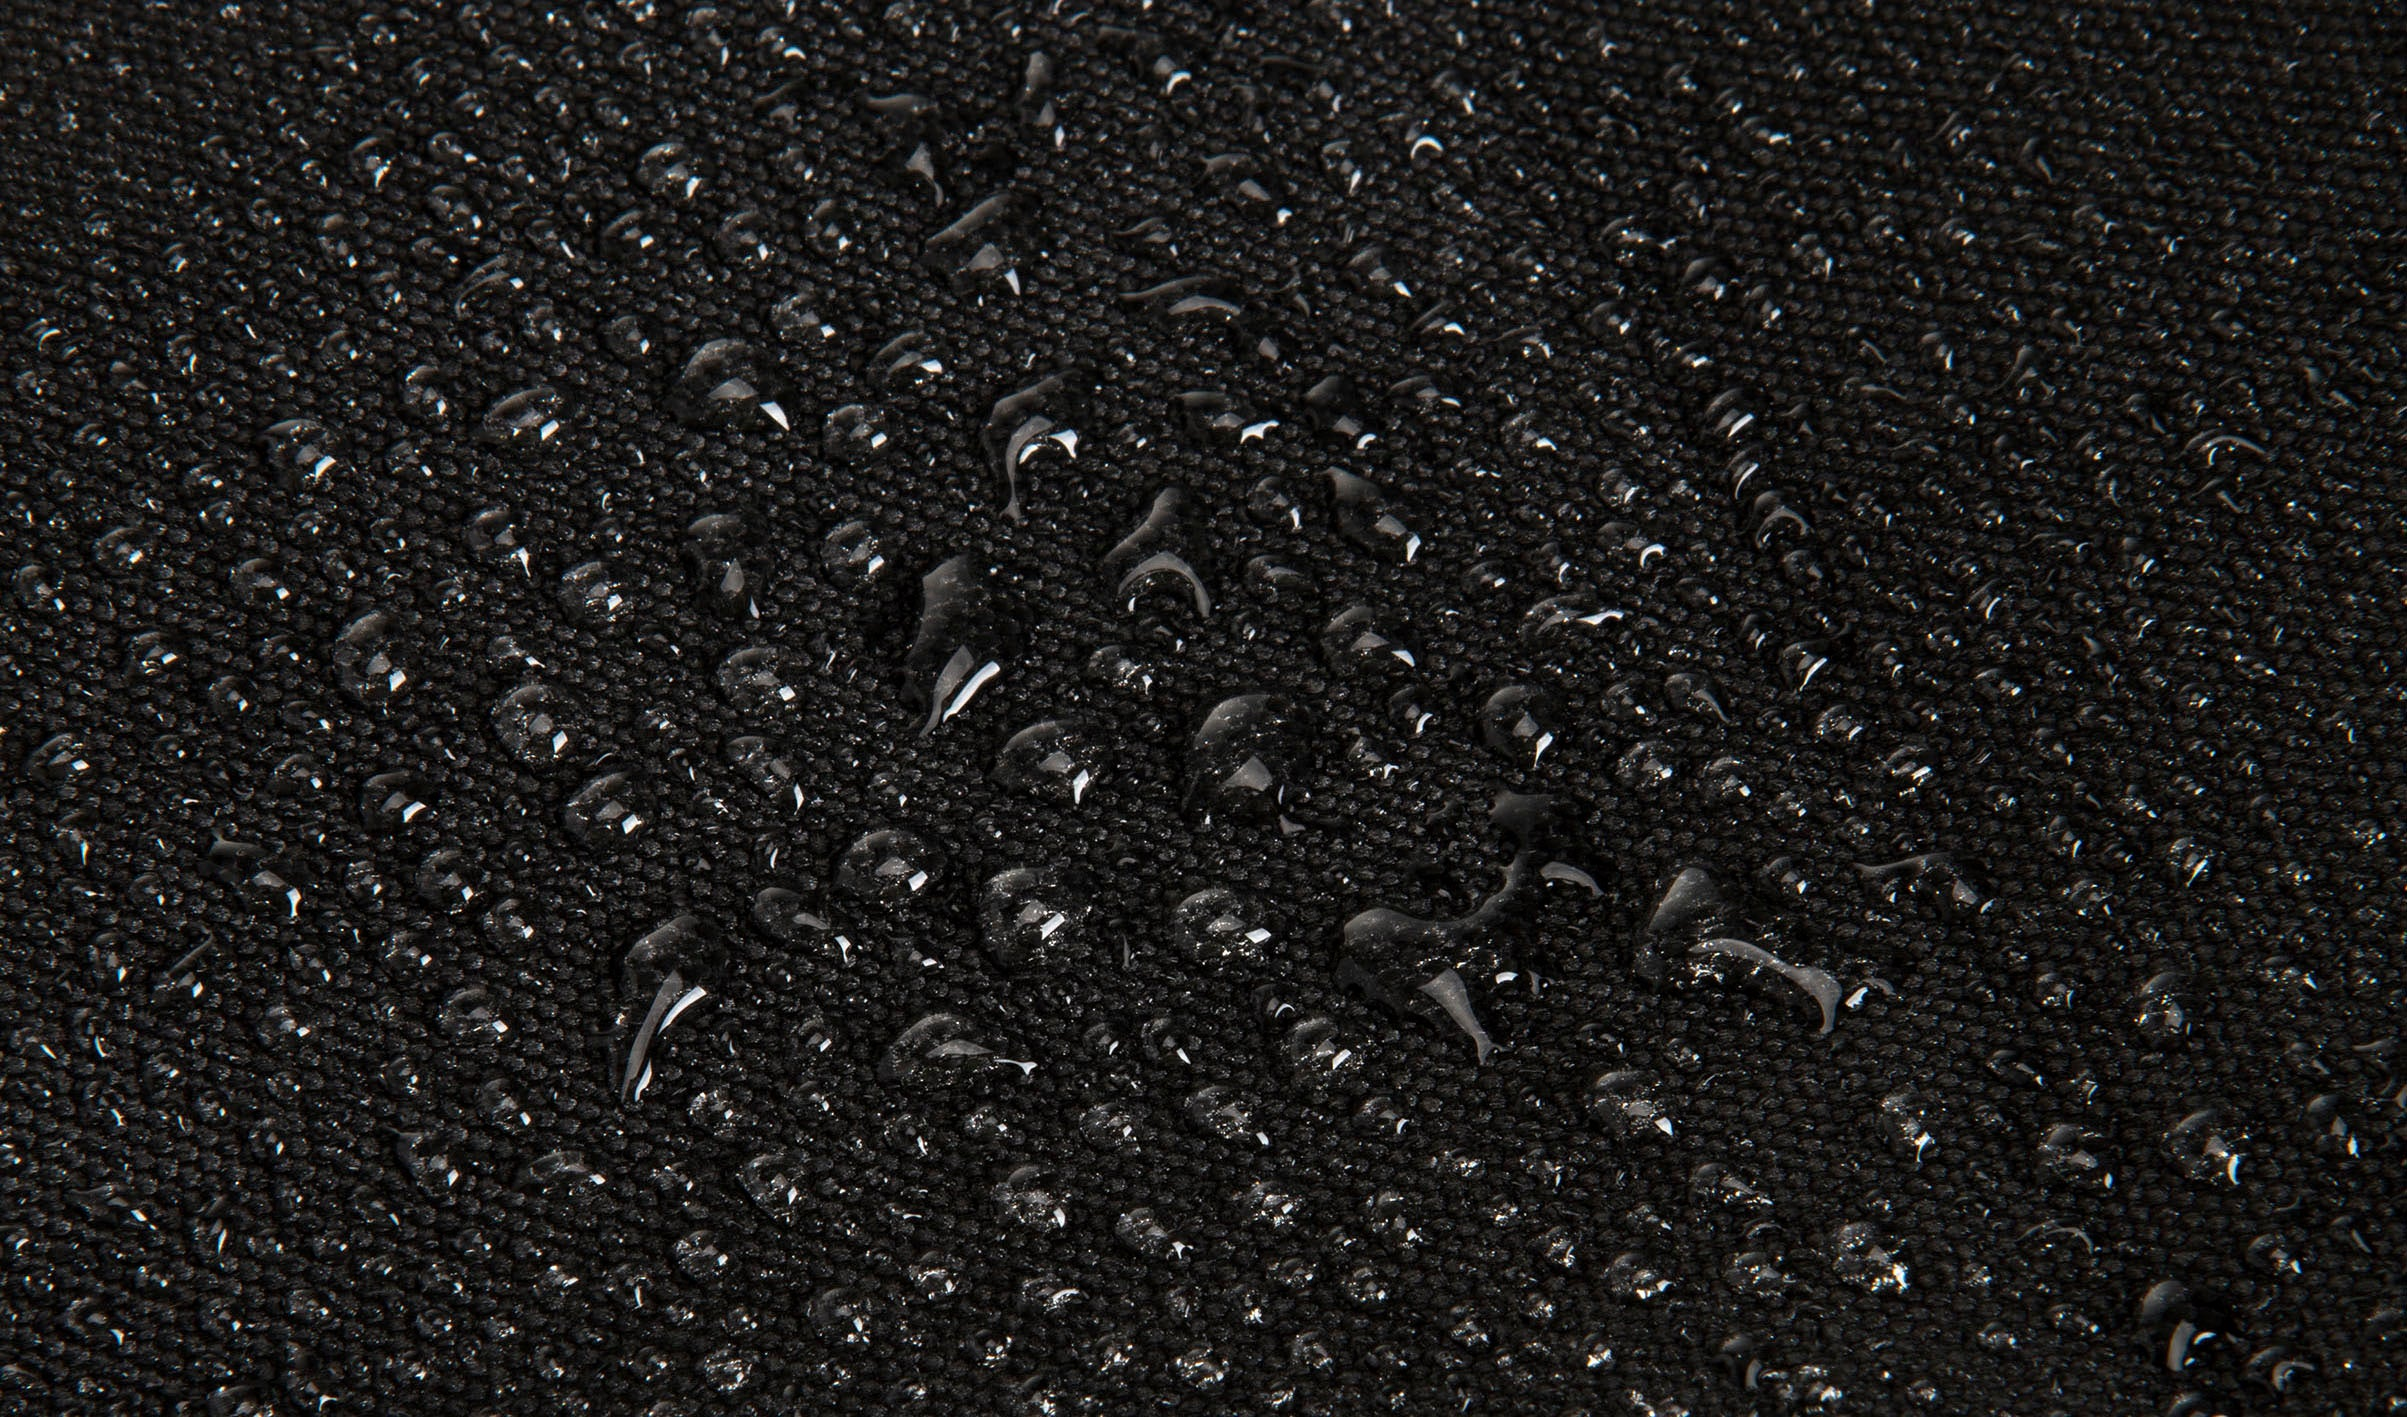 water resistant scuba material with water droplets